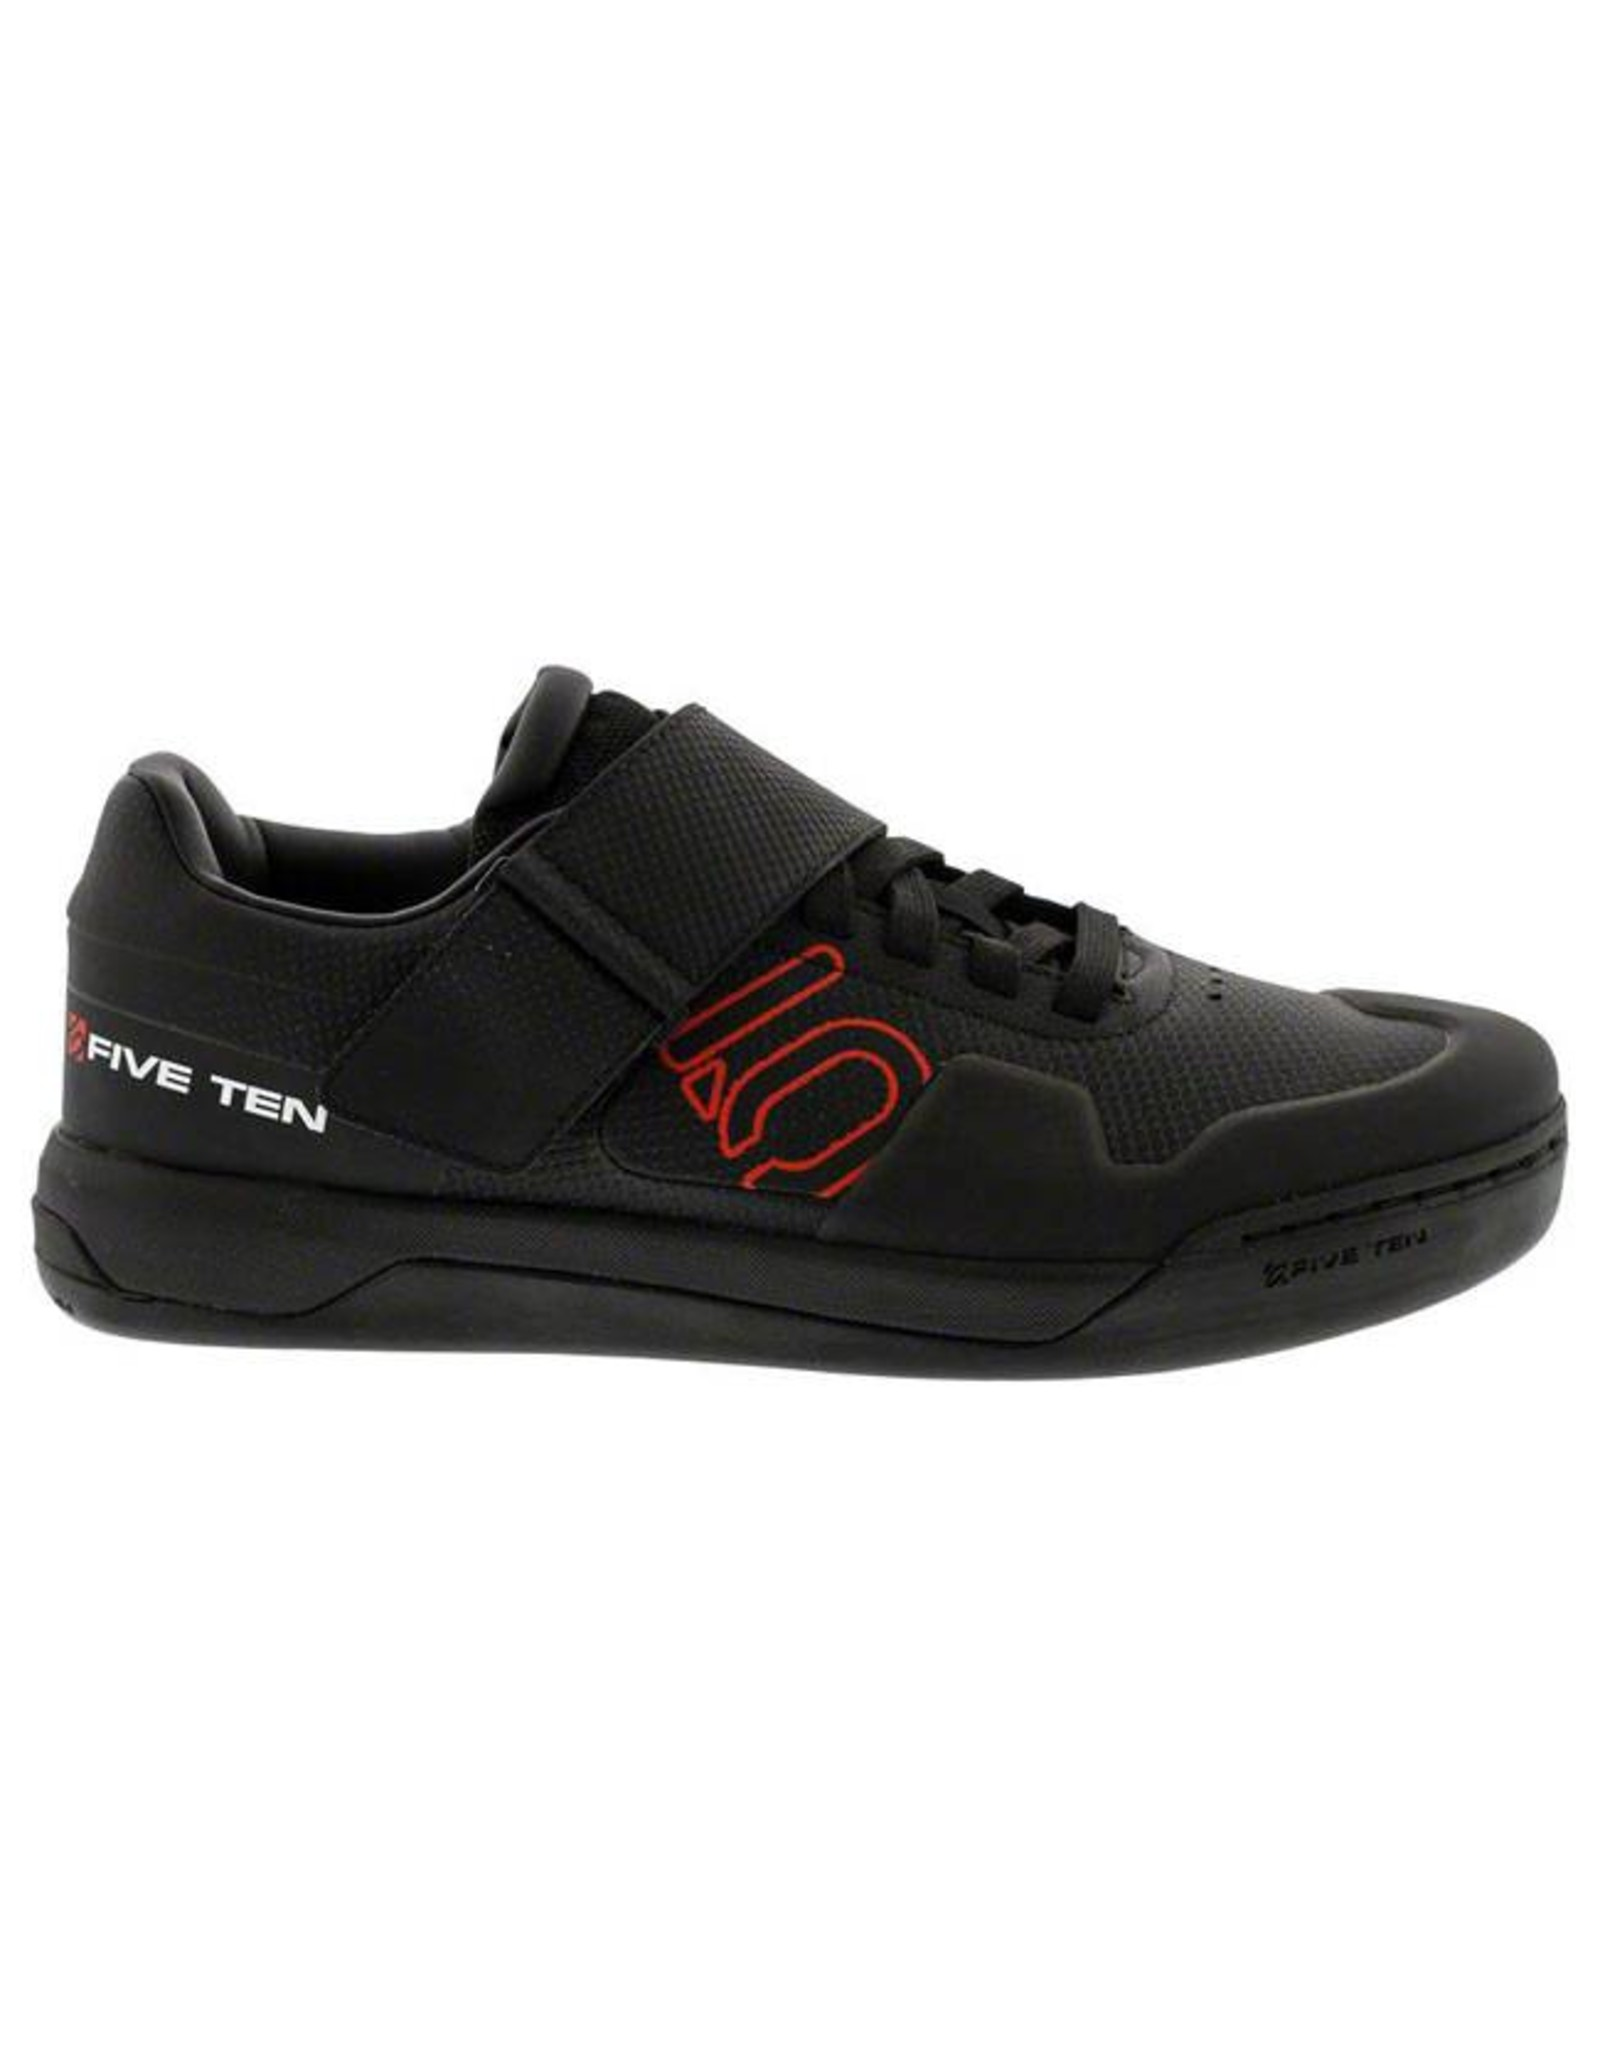 Five Ten Five Ten Hellcat Pro Men's Clipless/Flat Pedal Shoe: Black 7.5